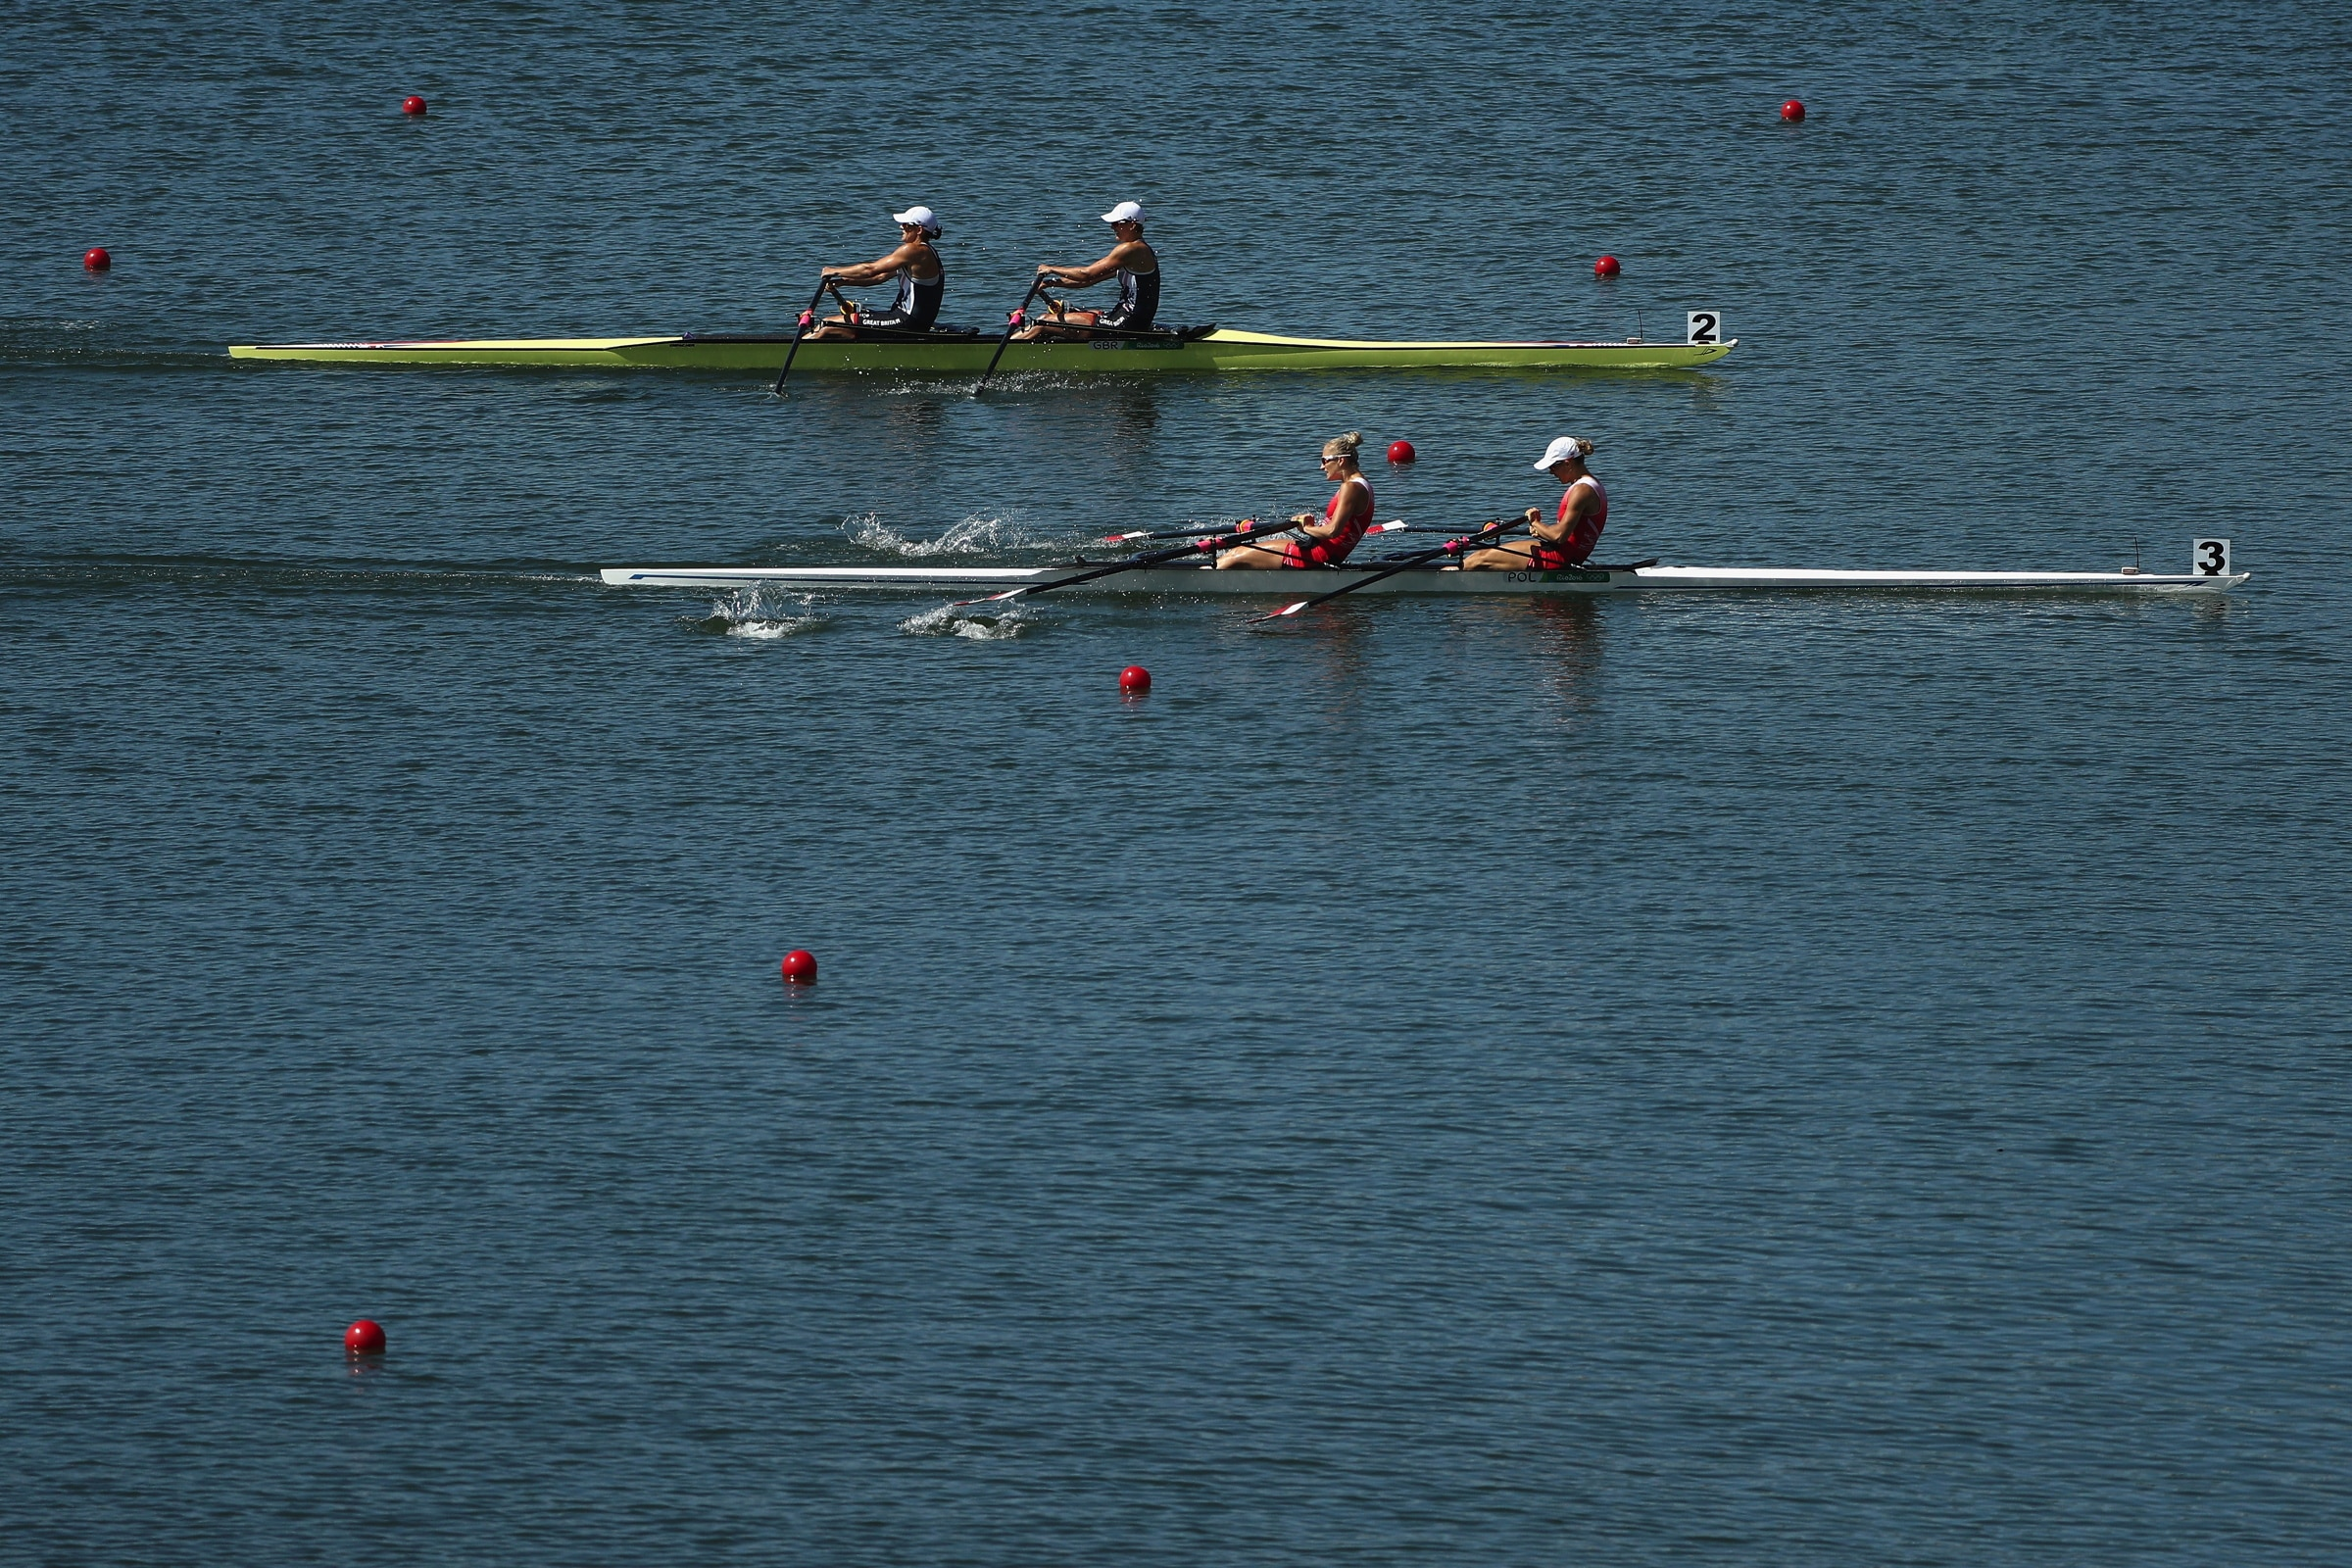 Rowing - Women's Double Sculls